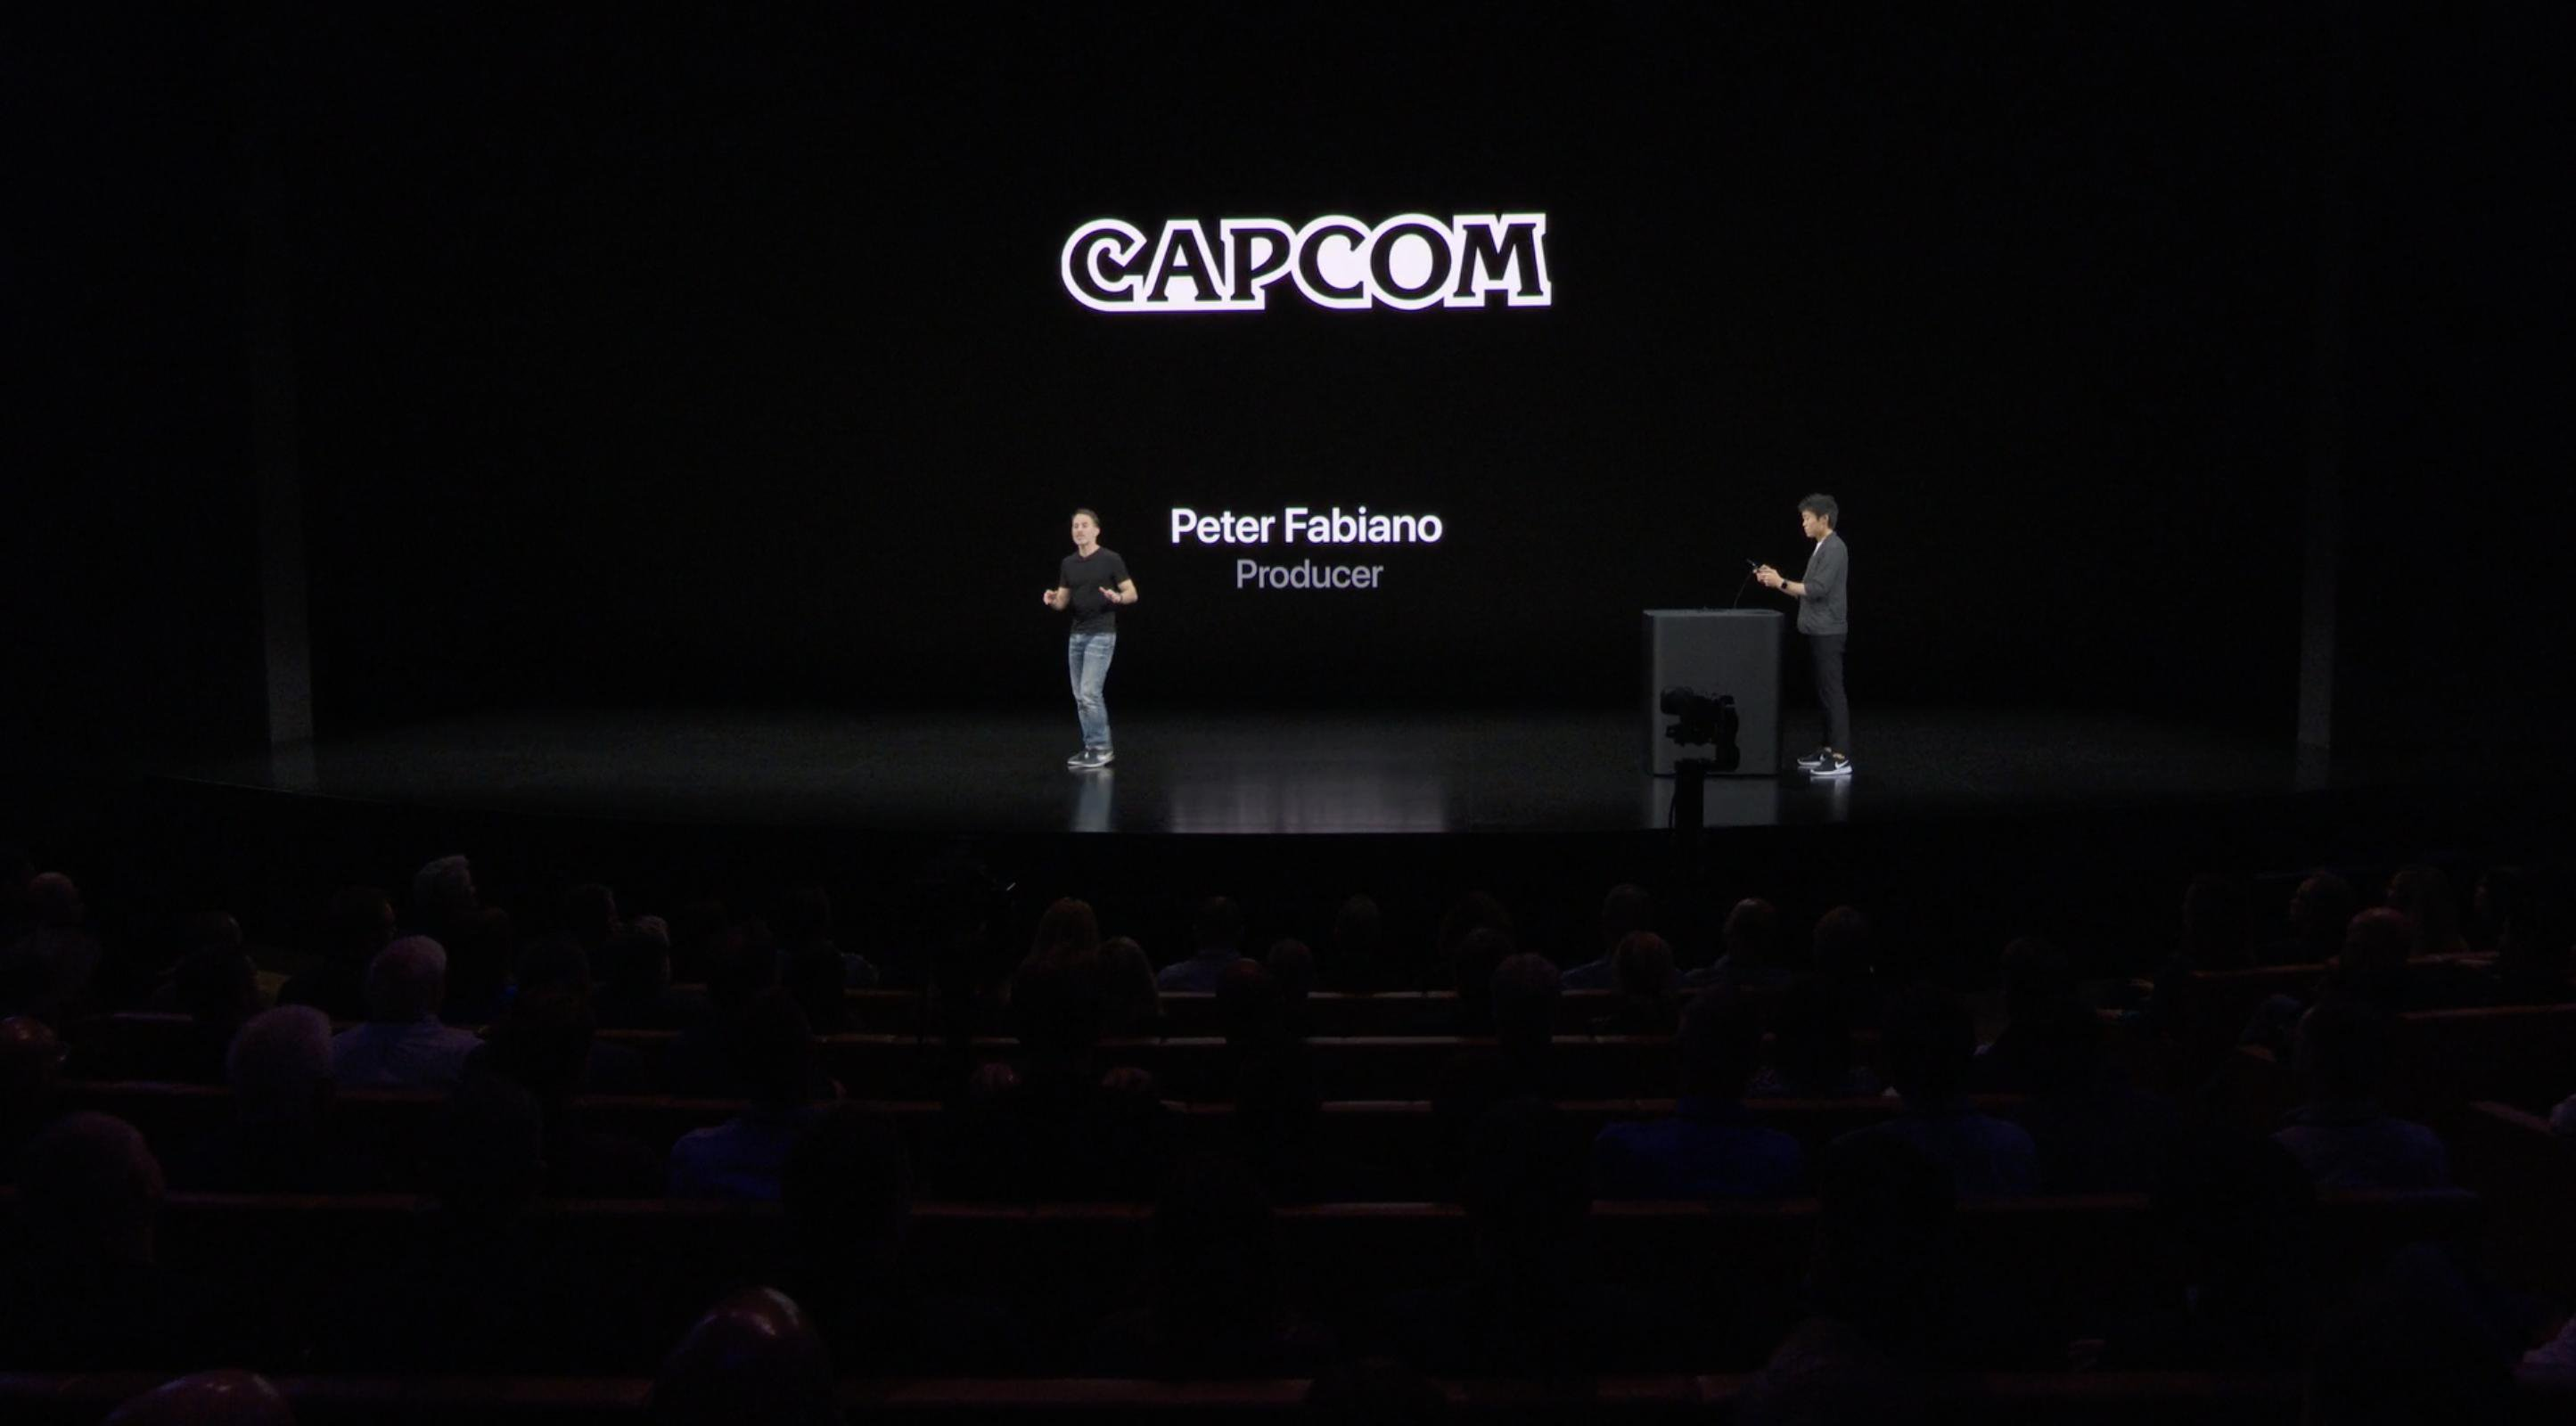 Capcom en el escenario de Apple